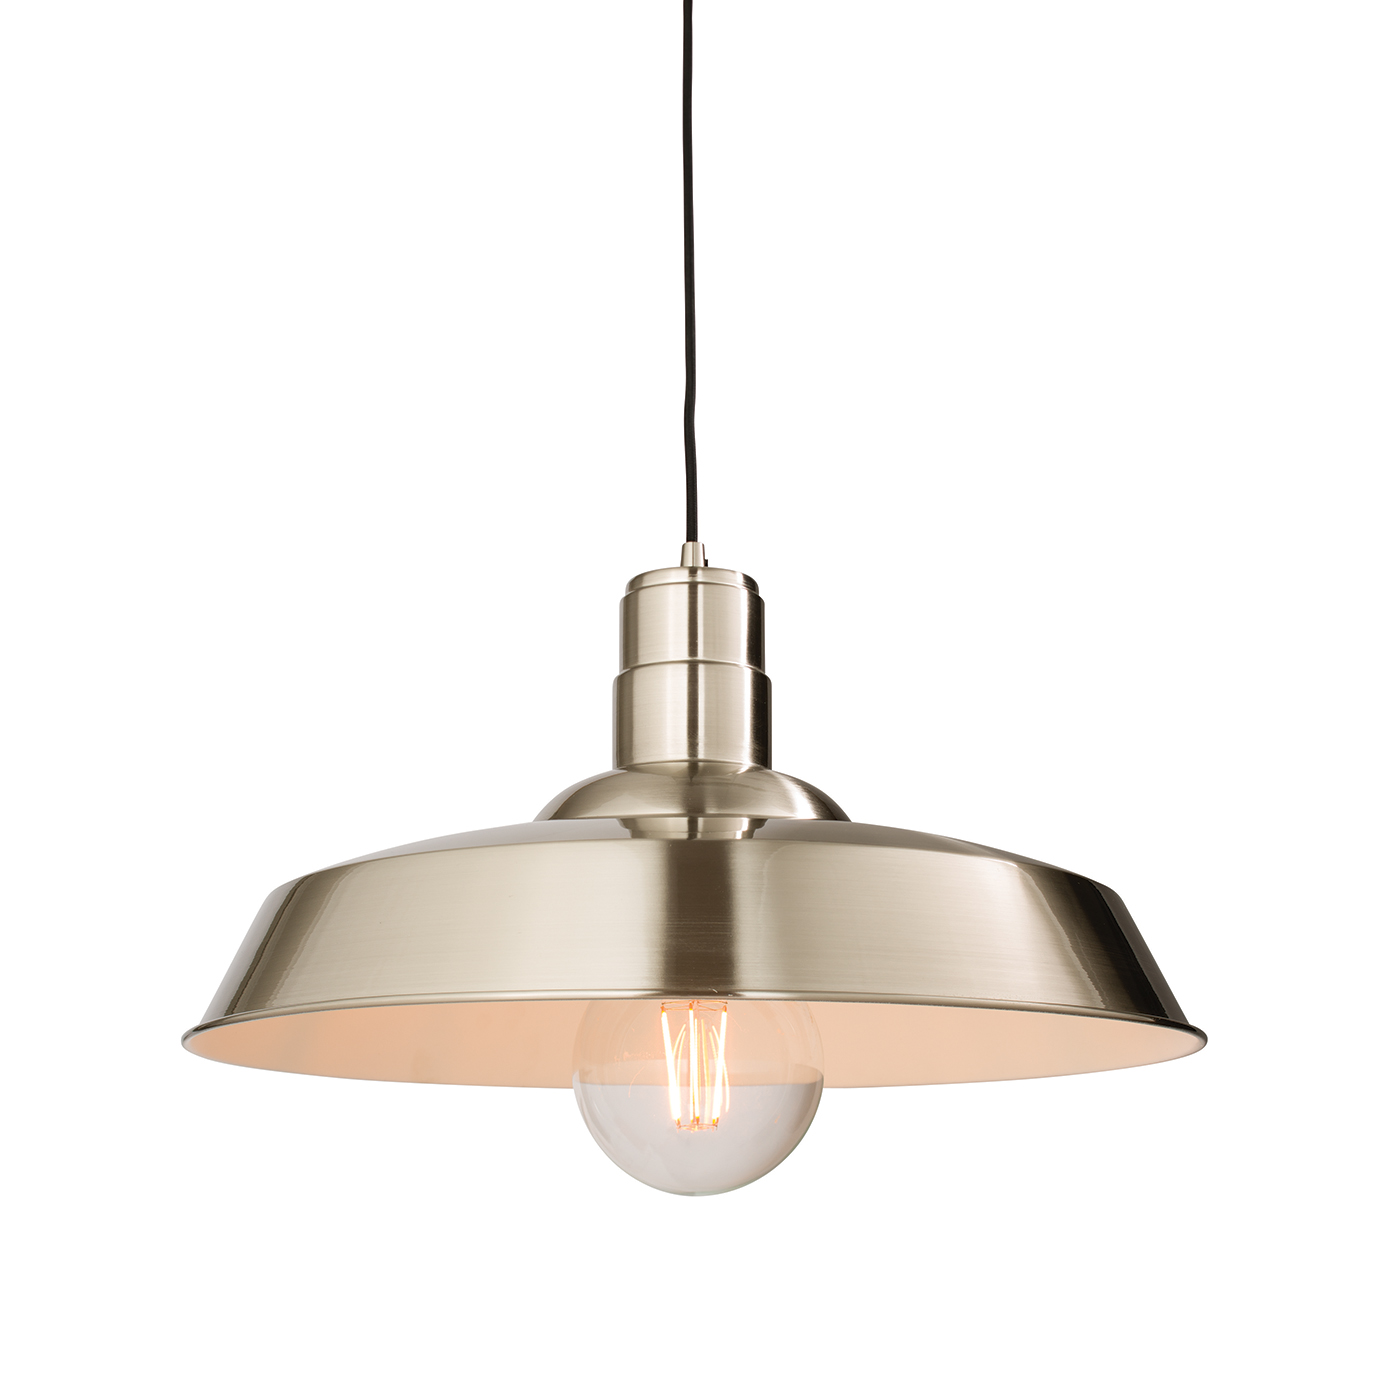 Endon Moore pendant 1x 60W Gloss nickel plate